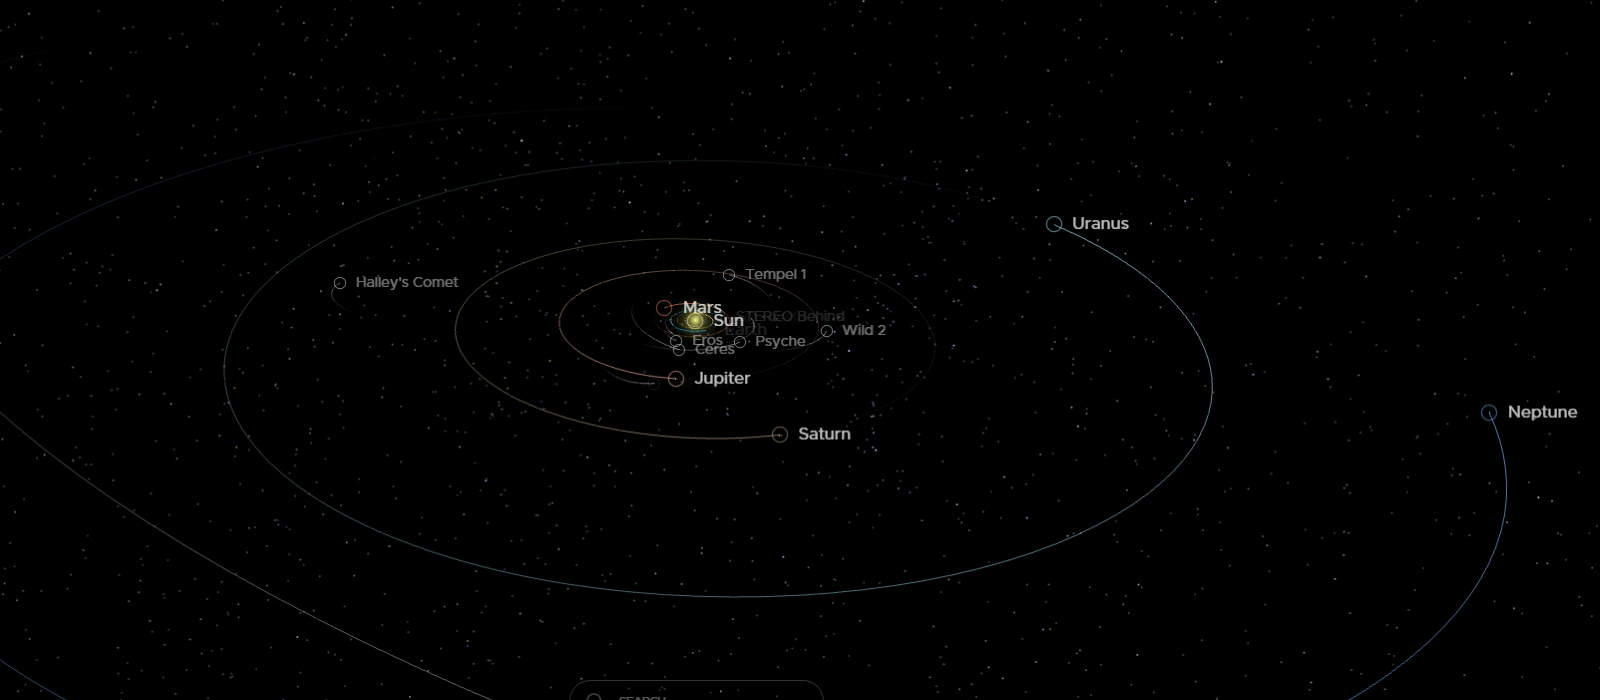 Solar system map as of July 17, 2019